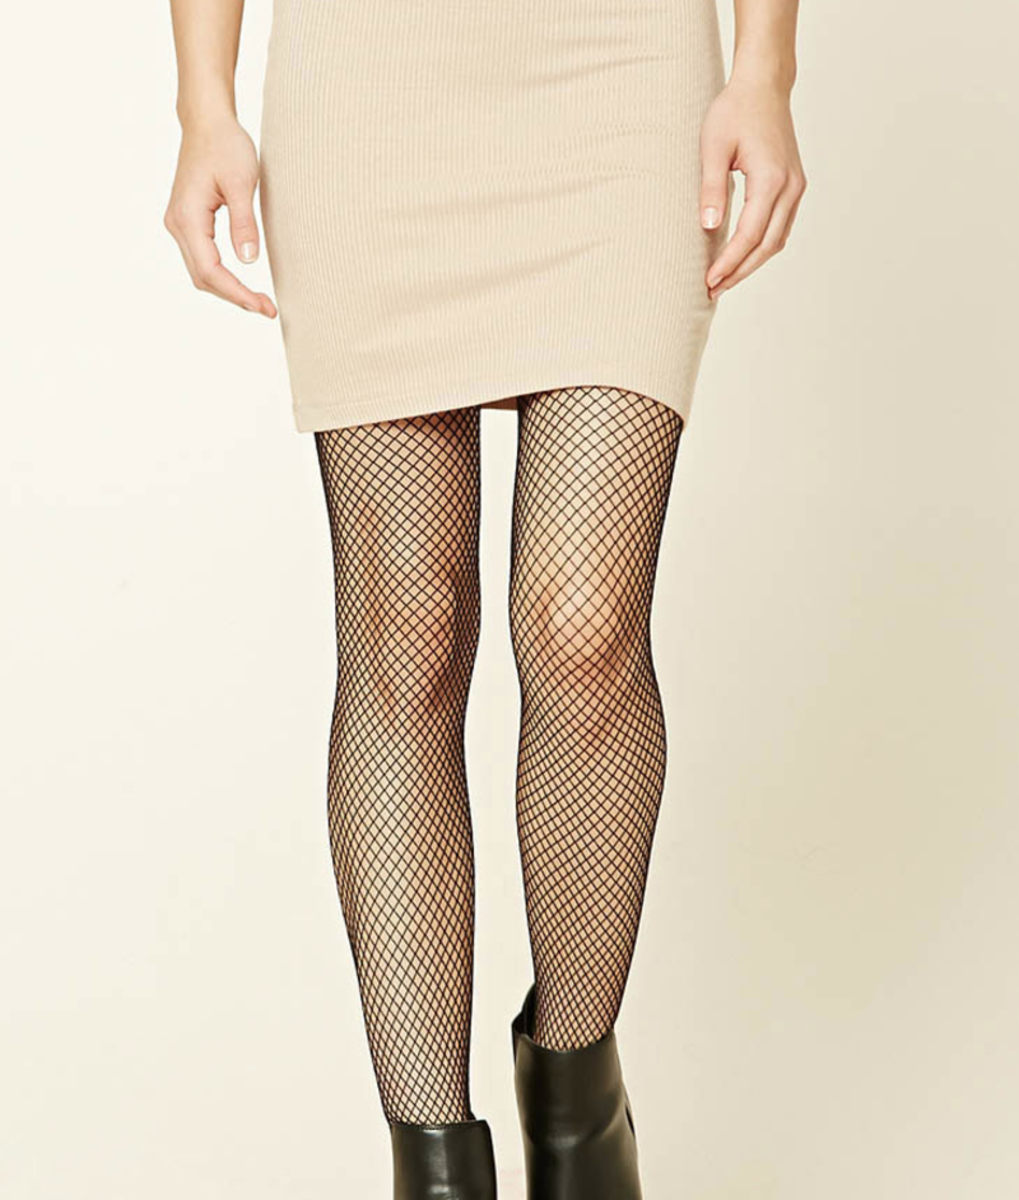 Shop the Item: Fishnet Tights ($6) - To wear with mini skirts and flat boots + chunky sweaters